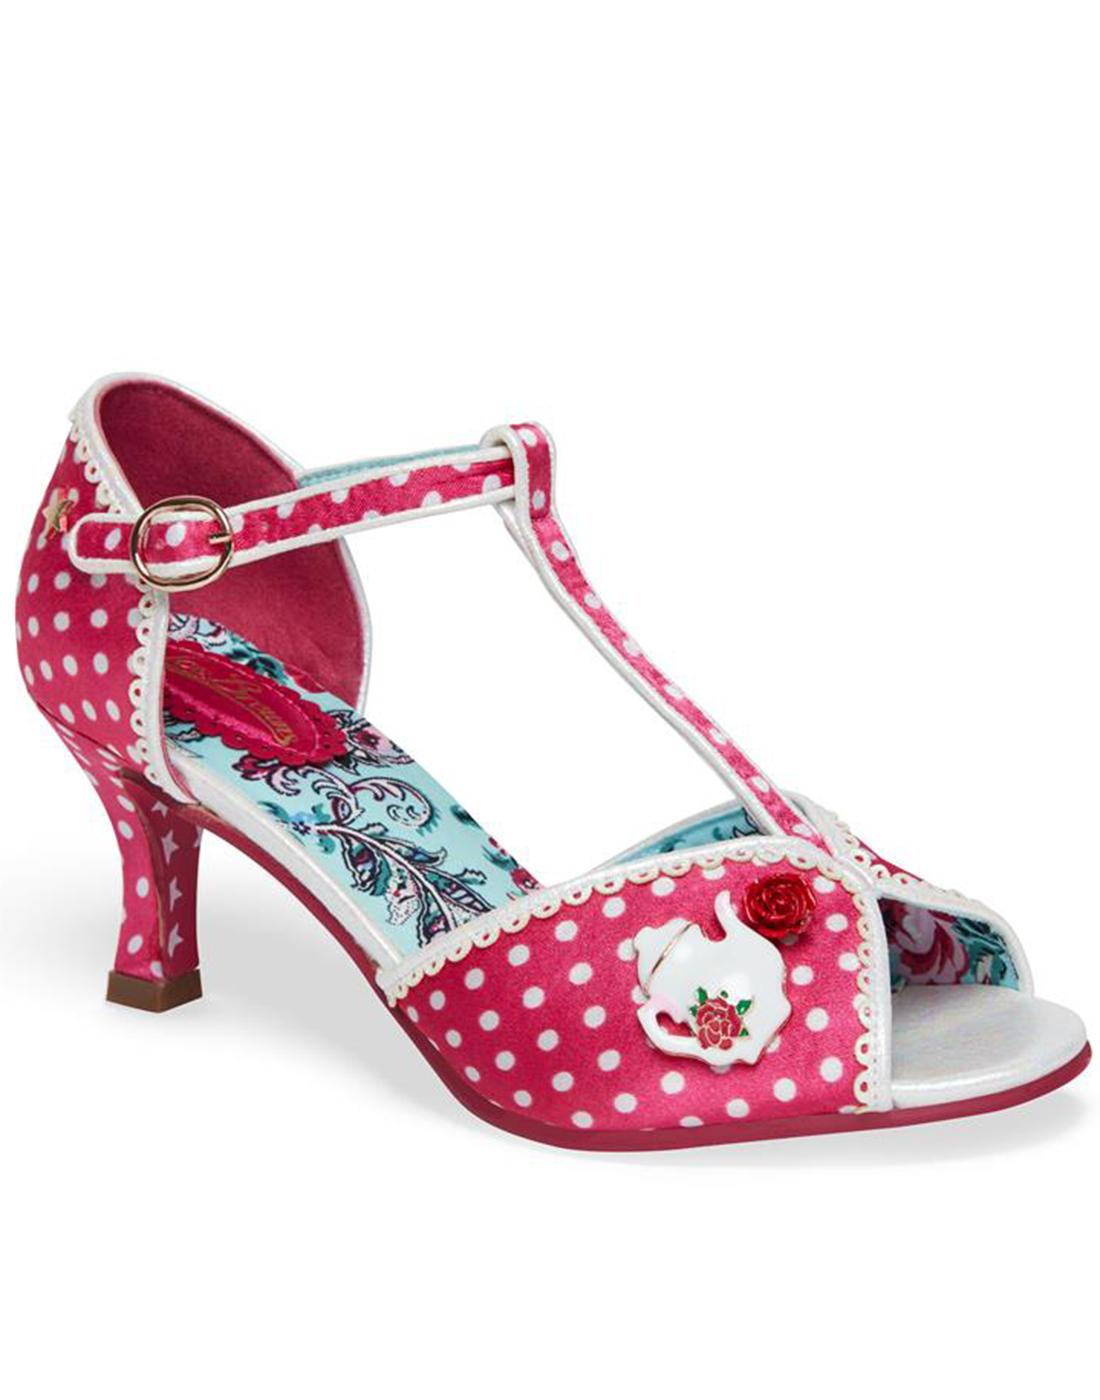 Edith JOE BROWNS Vintage Spotted Teapot Sandals